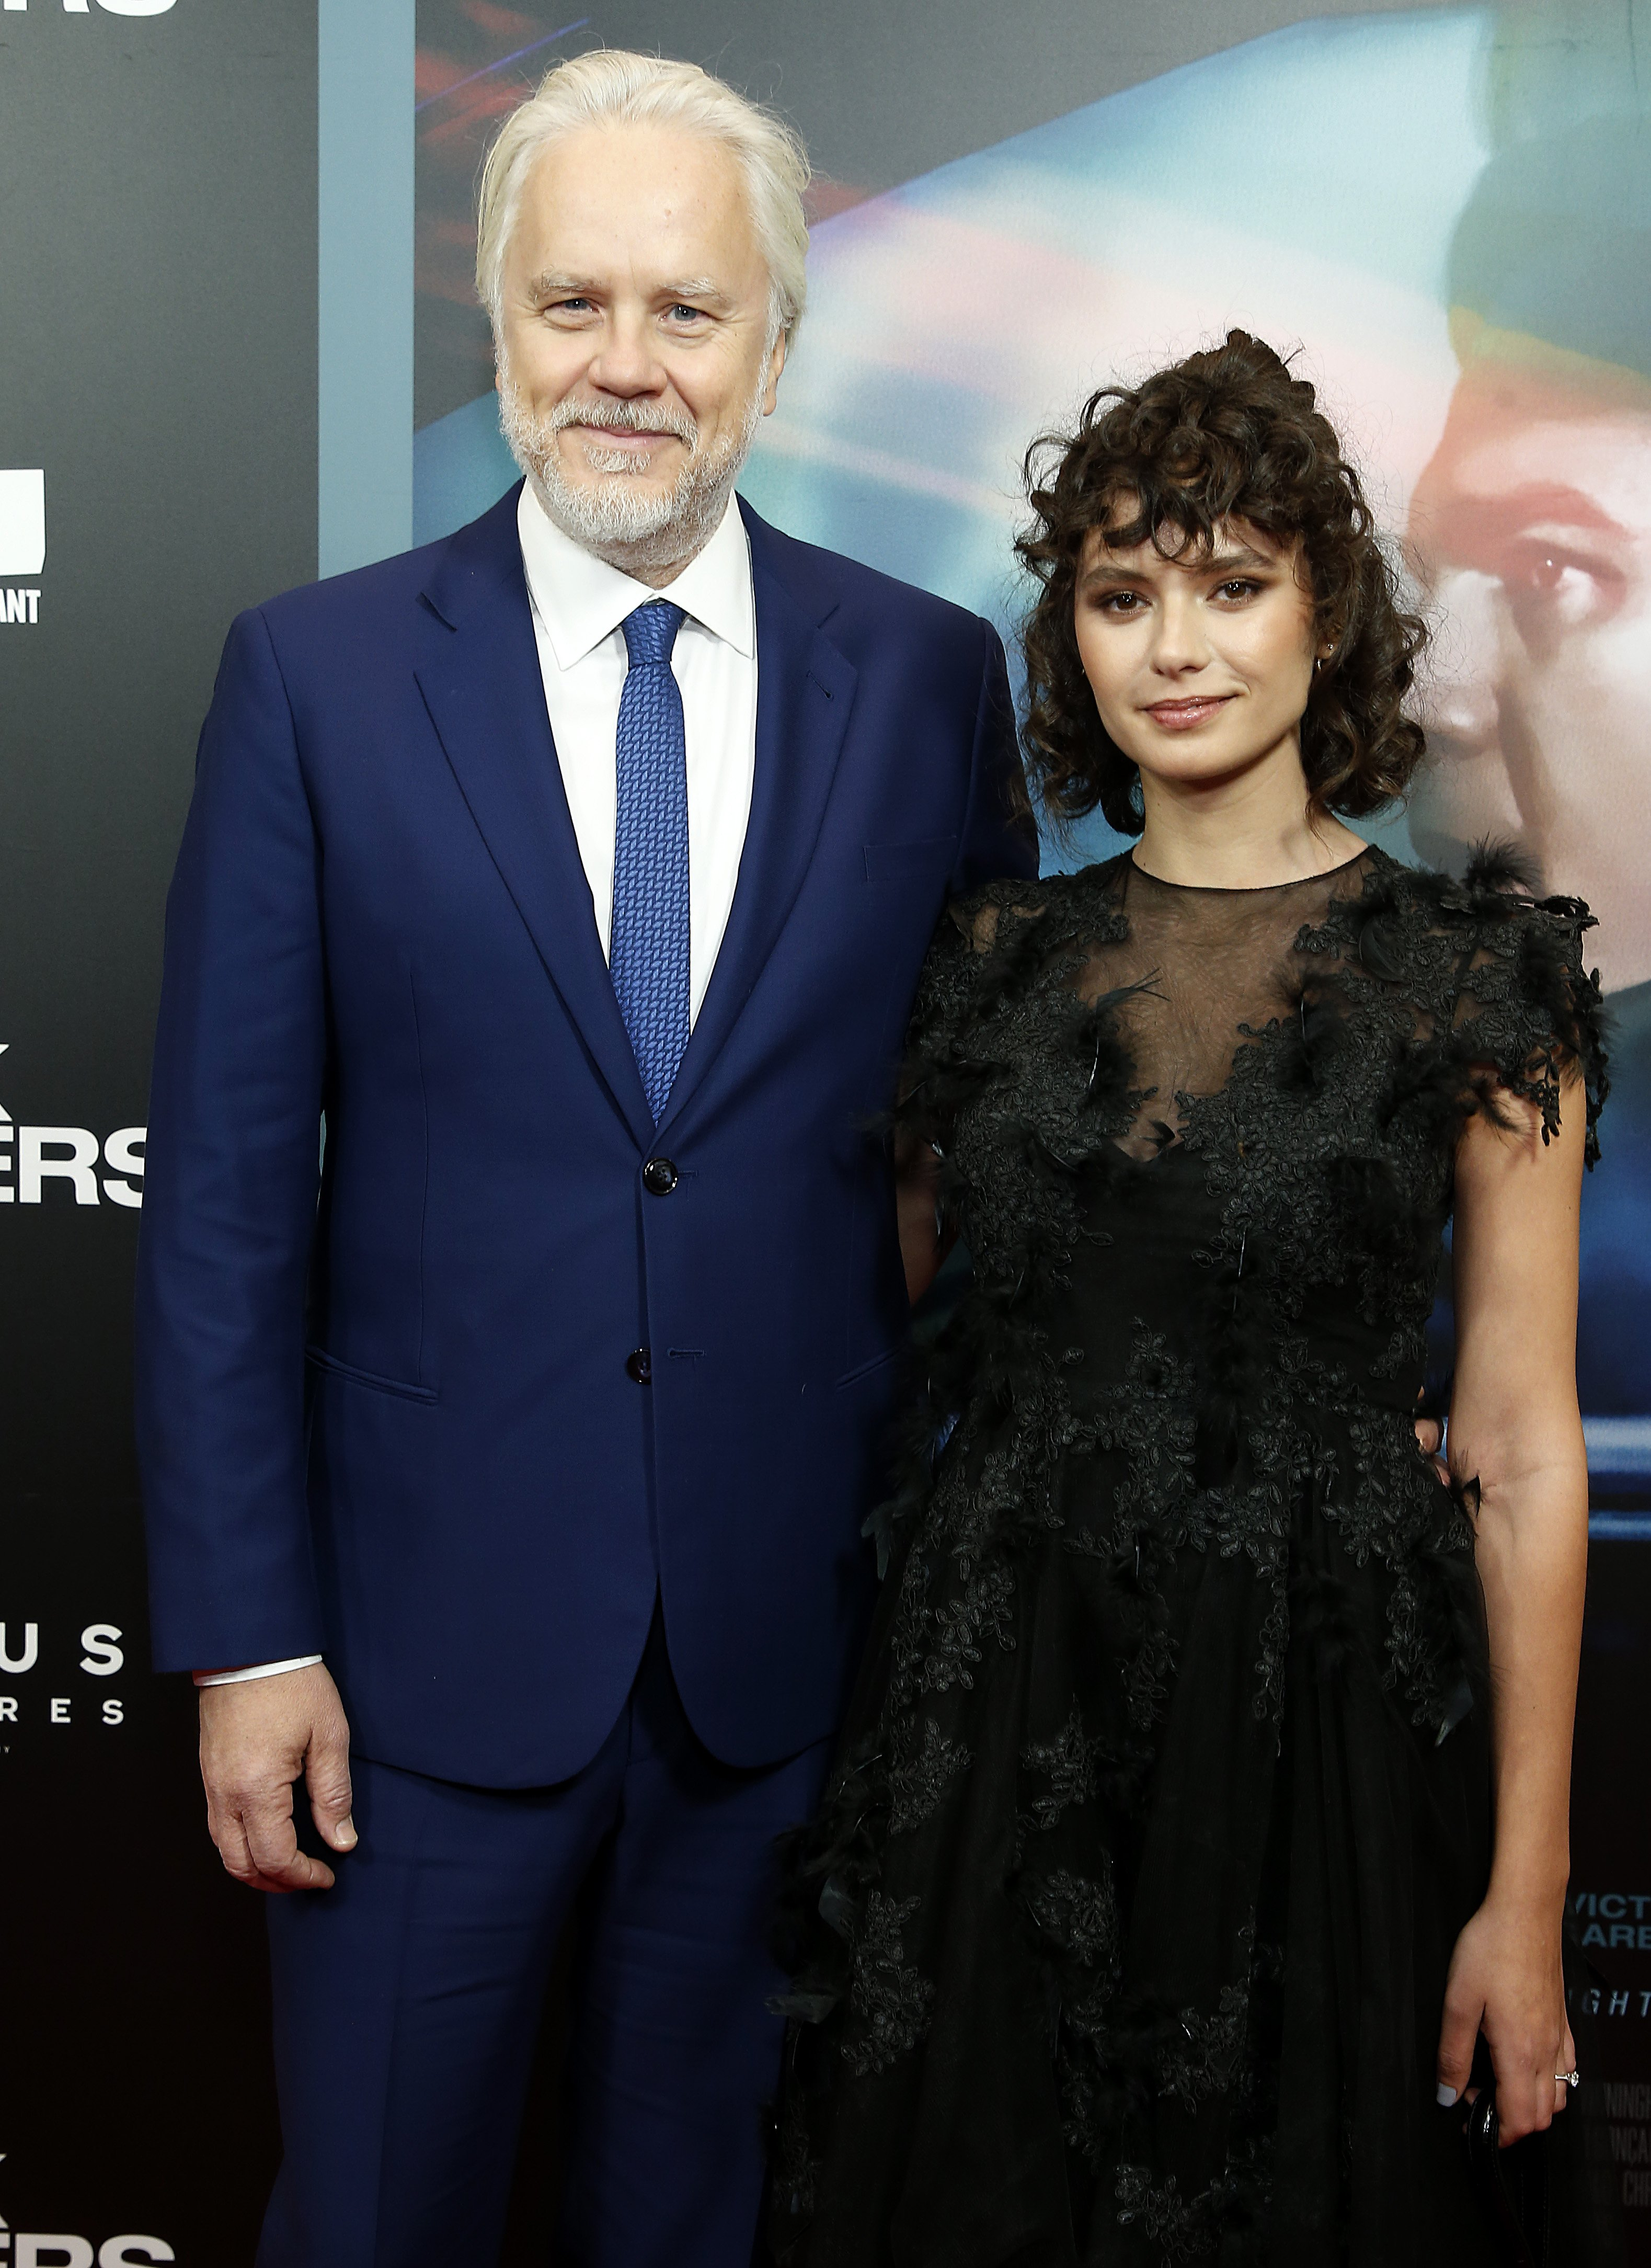 """Tim Robbins and Gratiela Brancusi at the premier of """"Dark Waters"""" in New York, November, 2019.   Photo: Getty Images."""